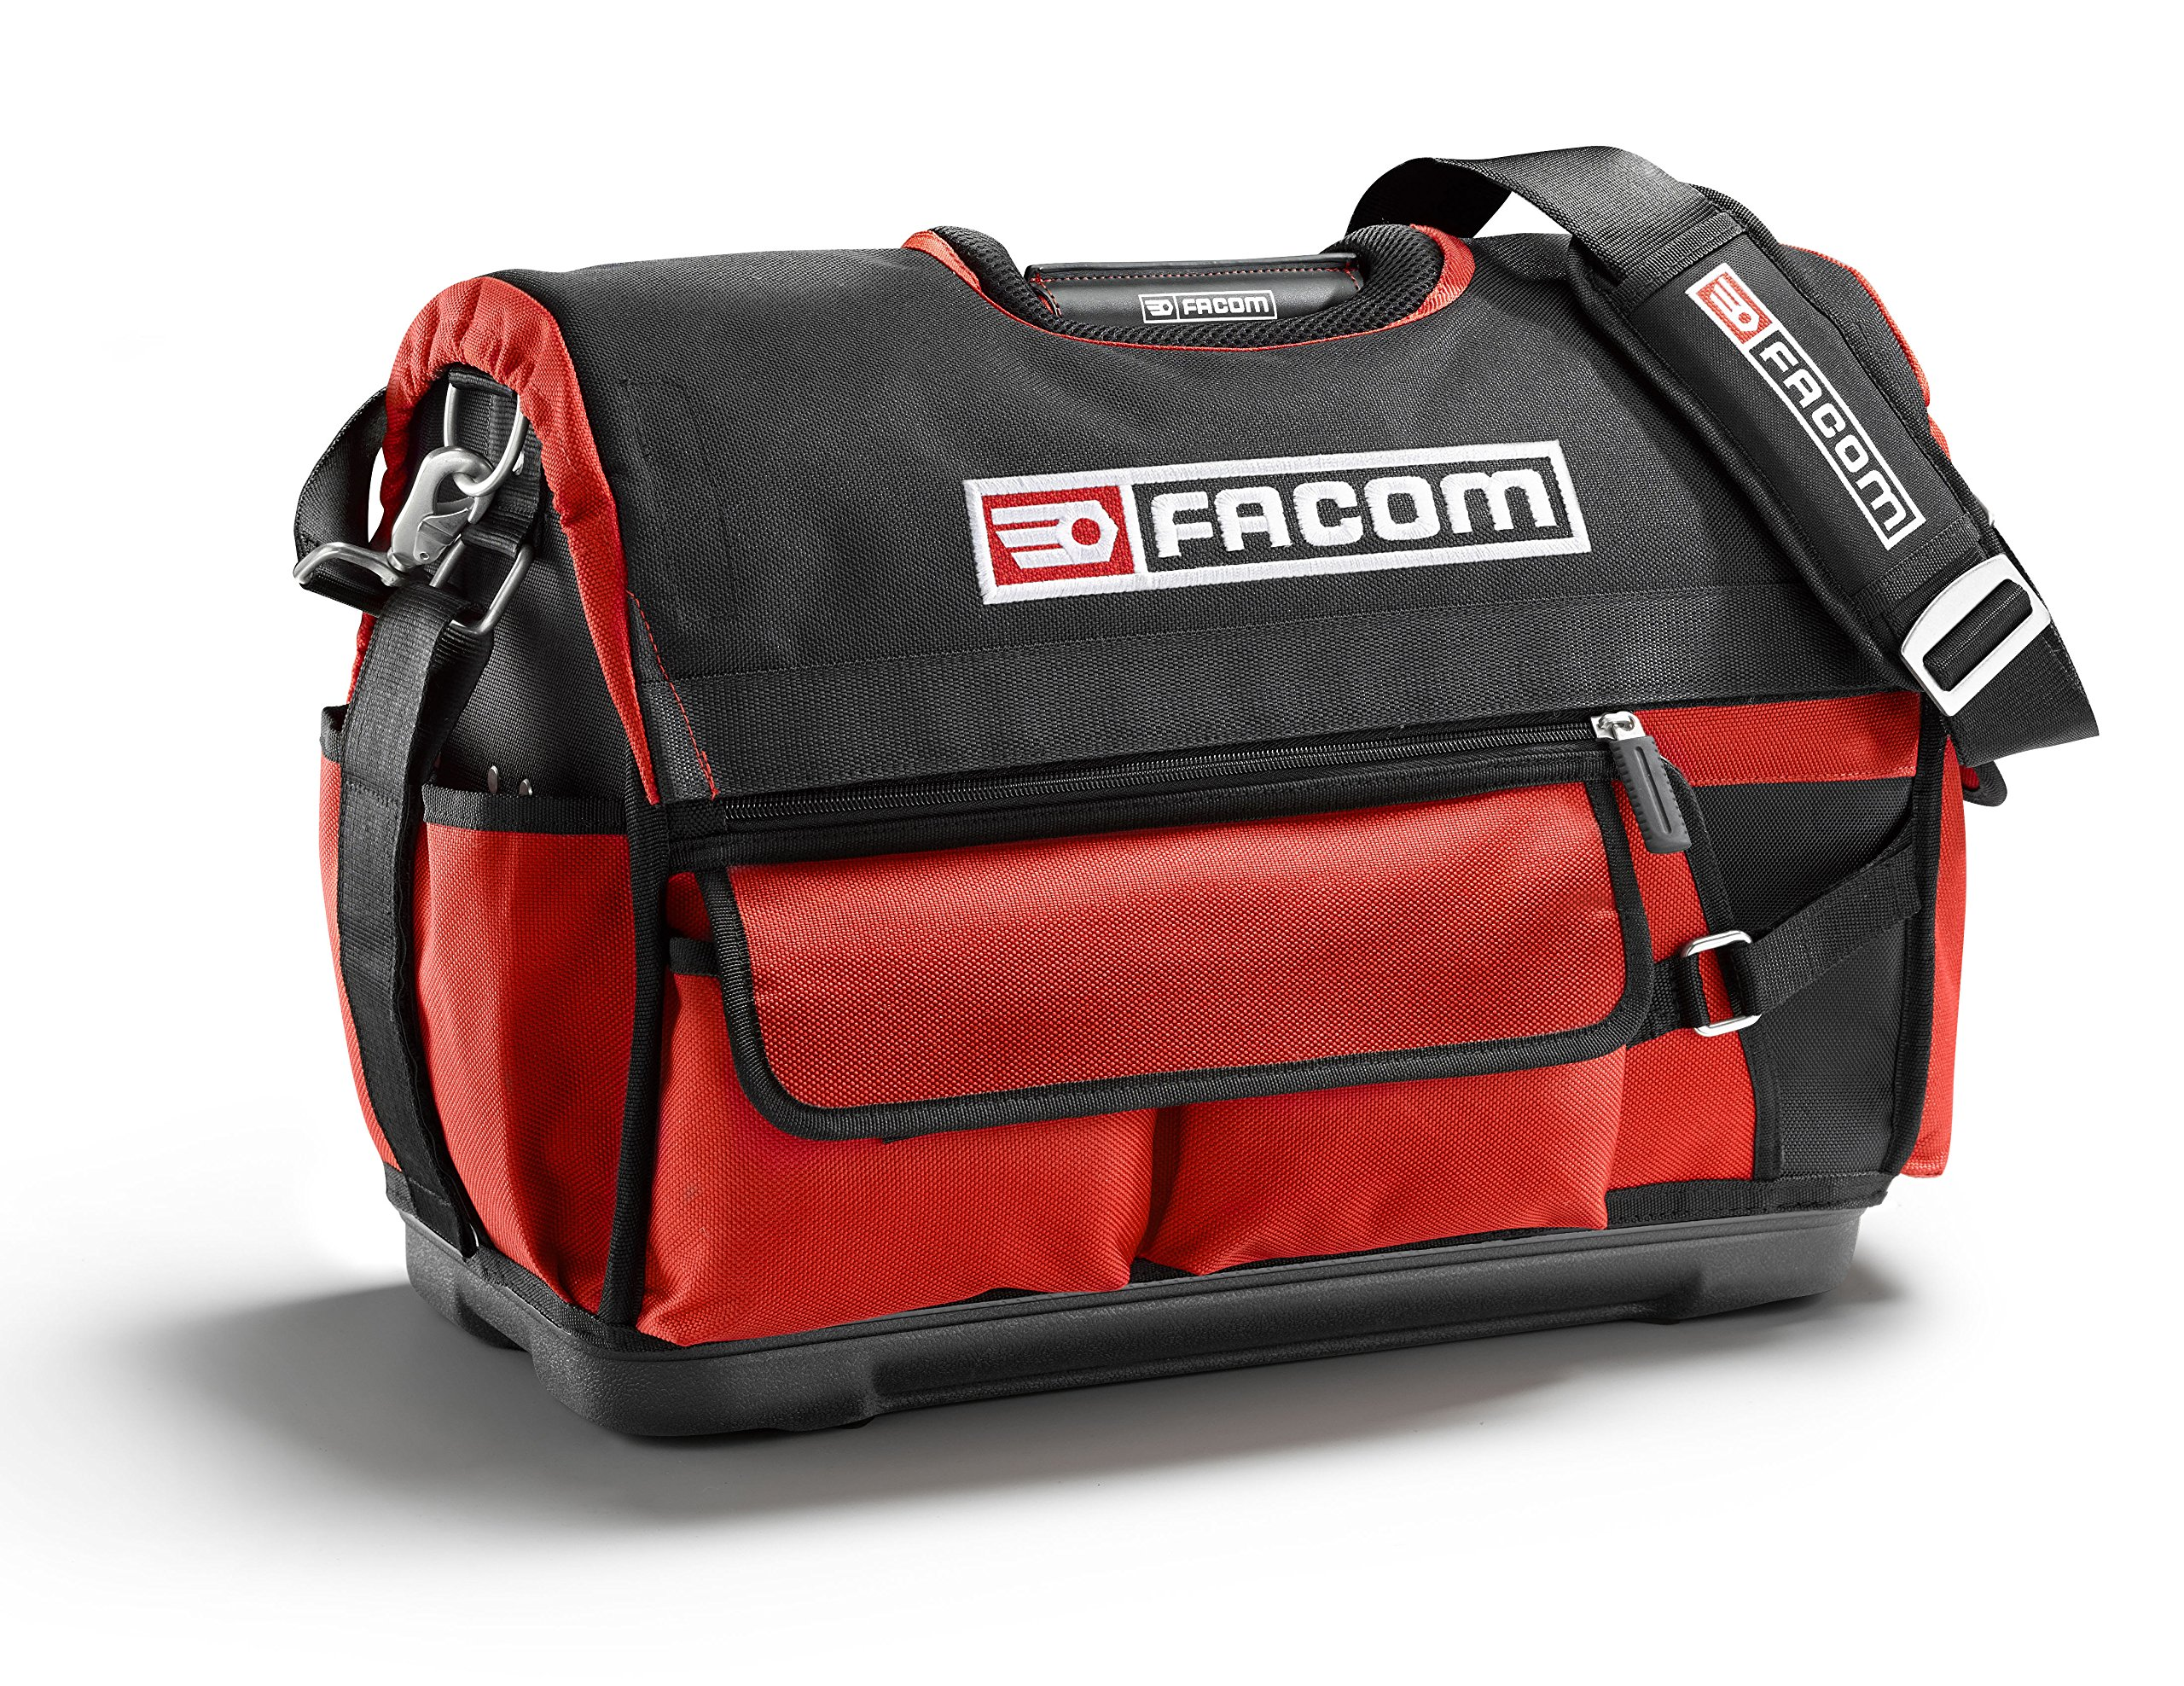 Facom Probag BS.T20PG Tool Bag Fabric 20 Inches by Facom